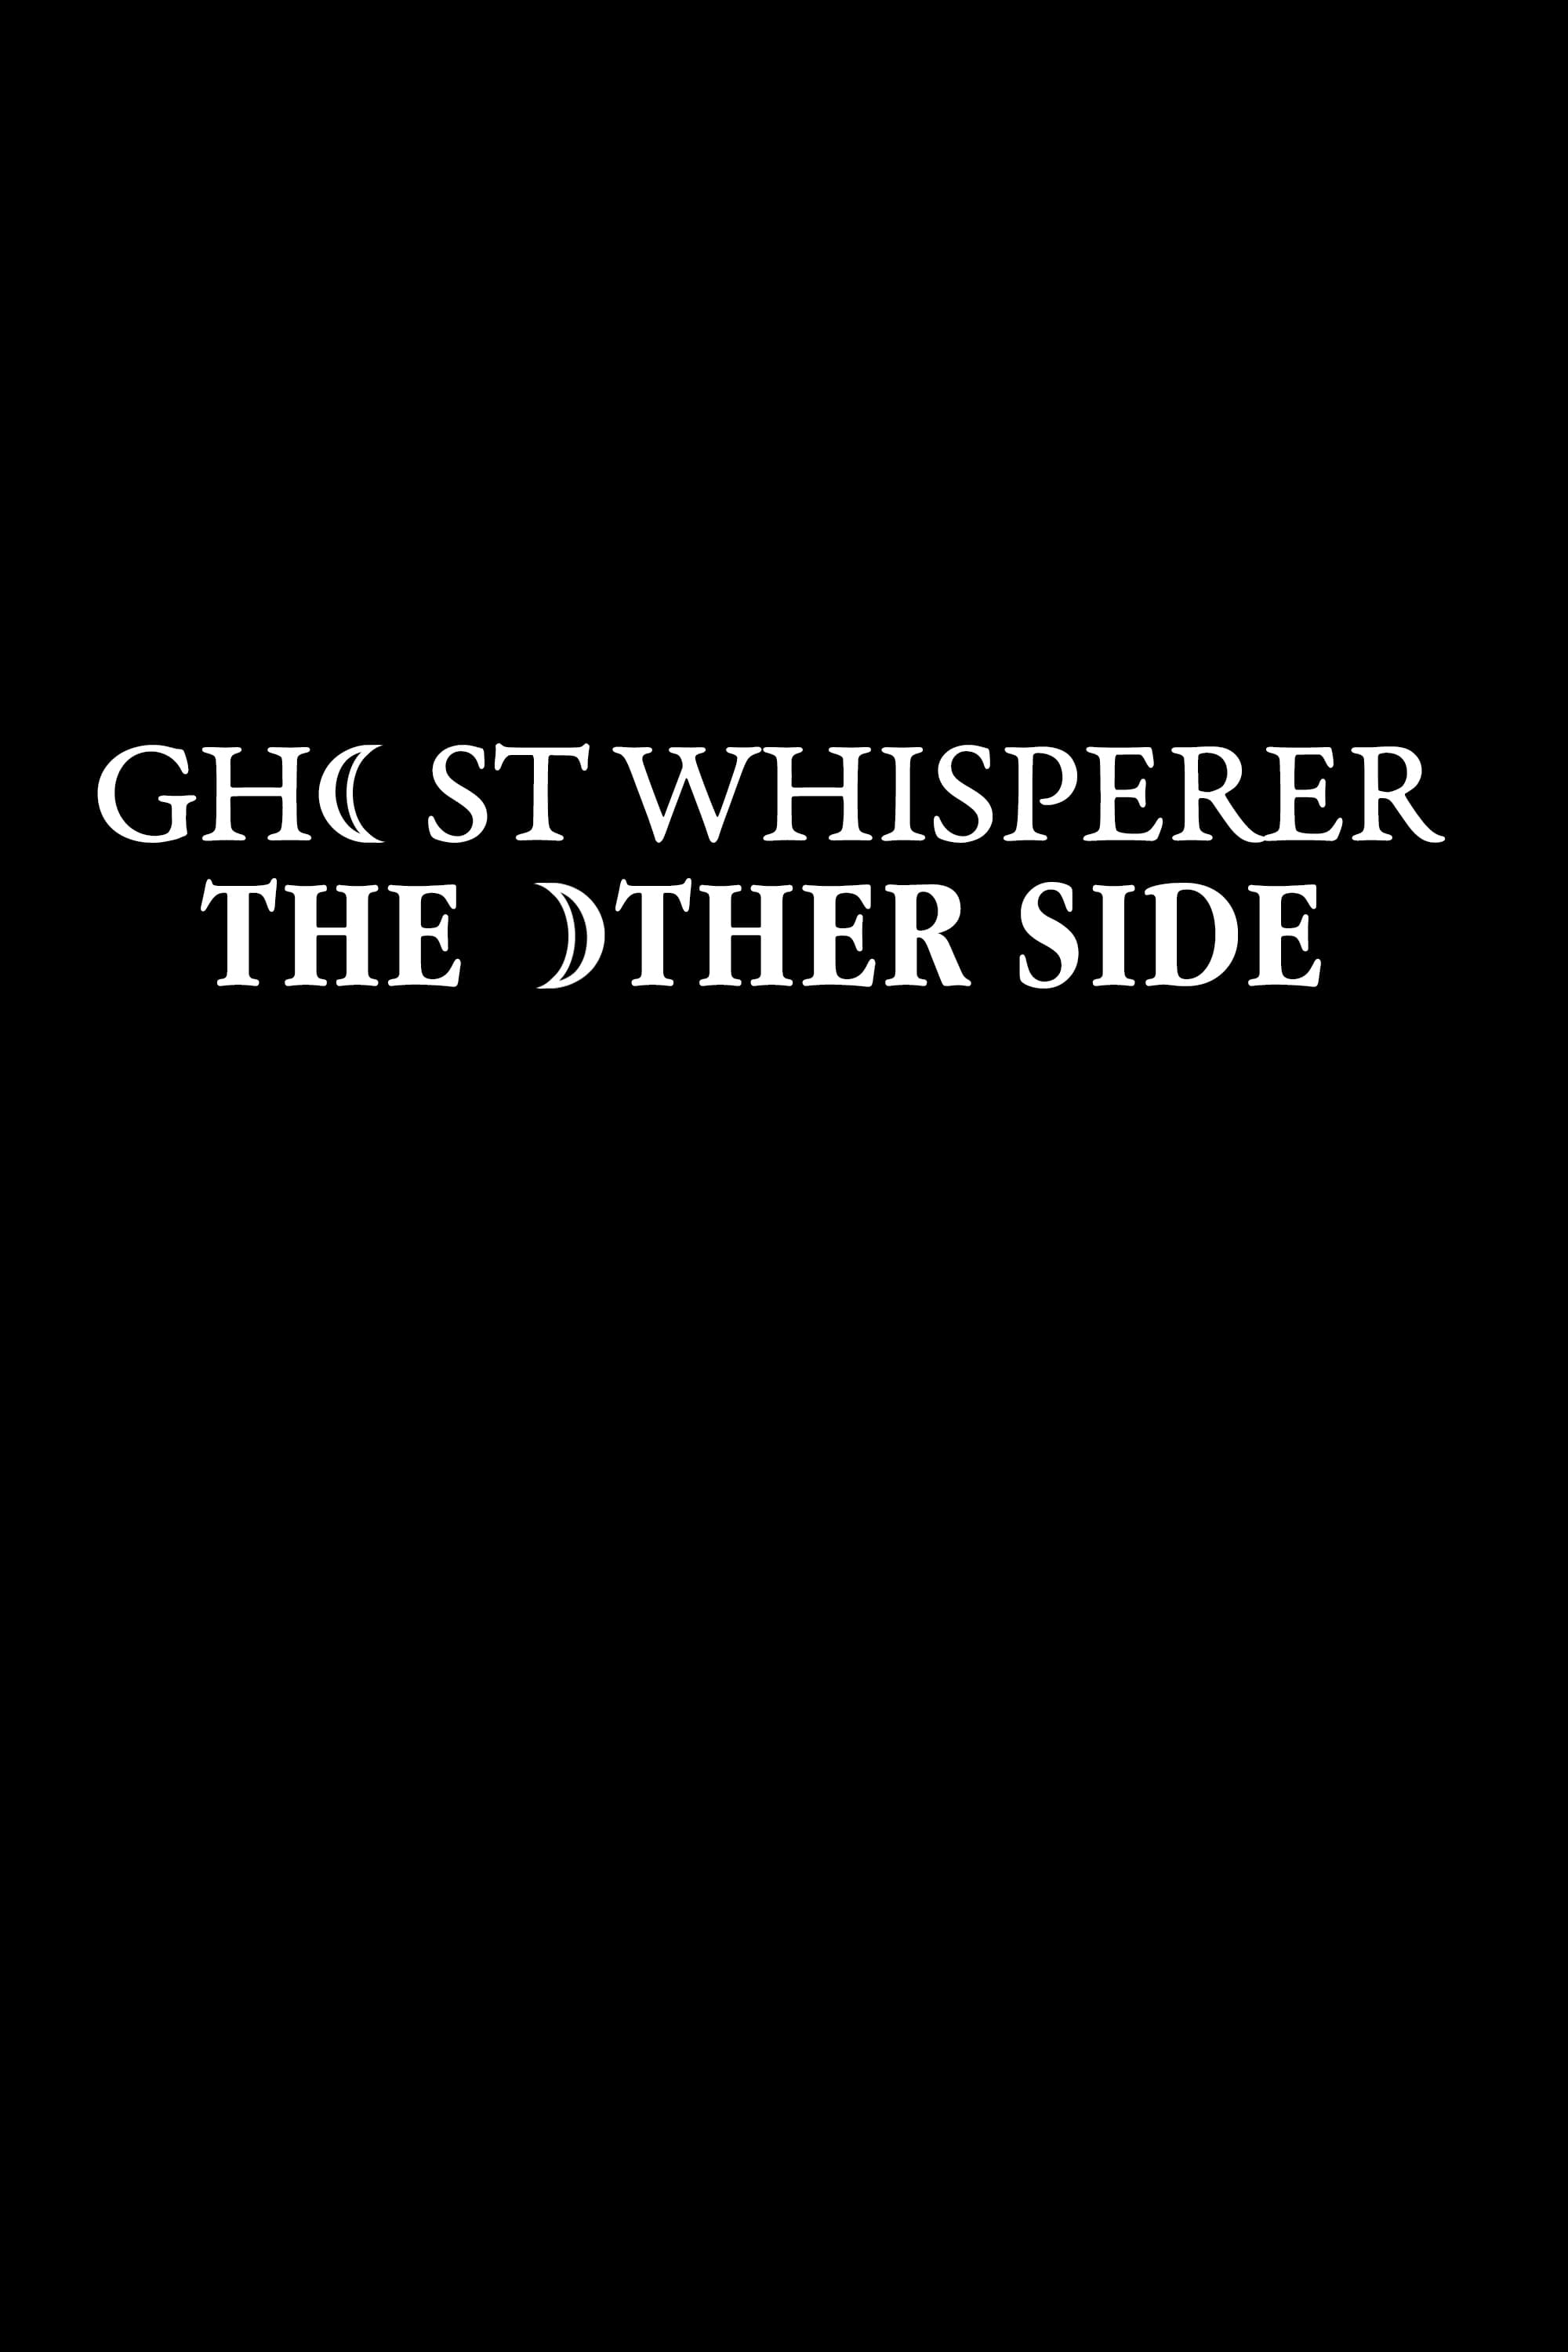 Ghost Whisperer: The Other Side (2007)